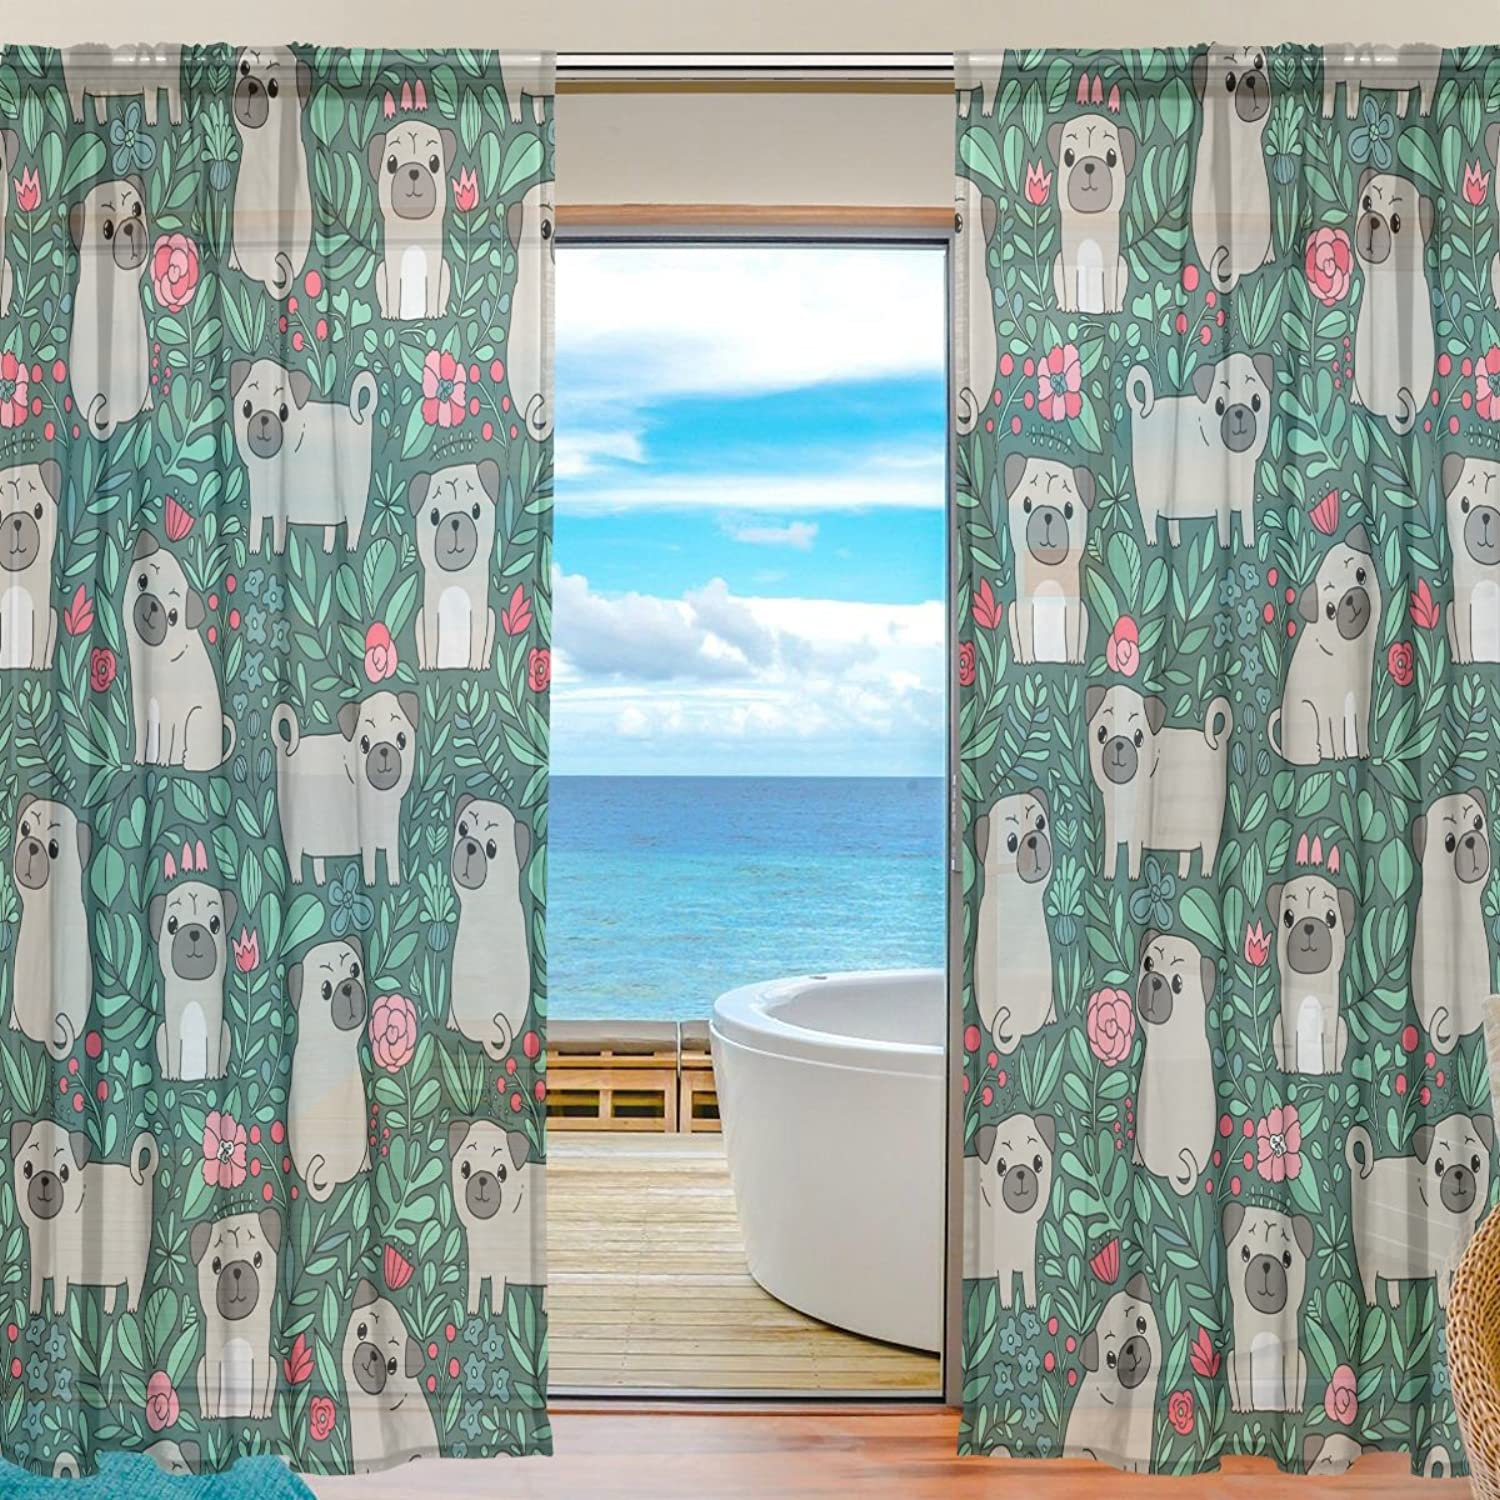 Vantaso Sheer Curtains 78 inch Long Little Pug Dog with Spring Floral for Kids Girls Bedroom Living Room Window Decorative 2 Panels